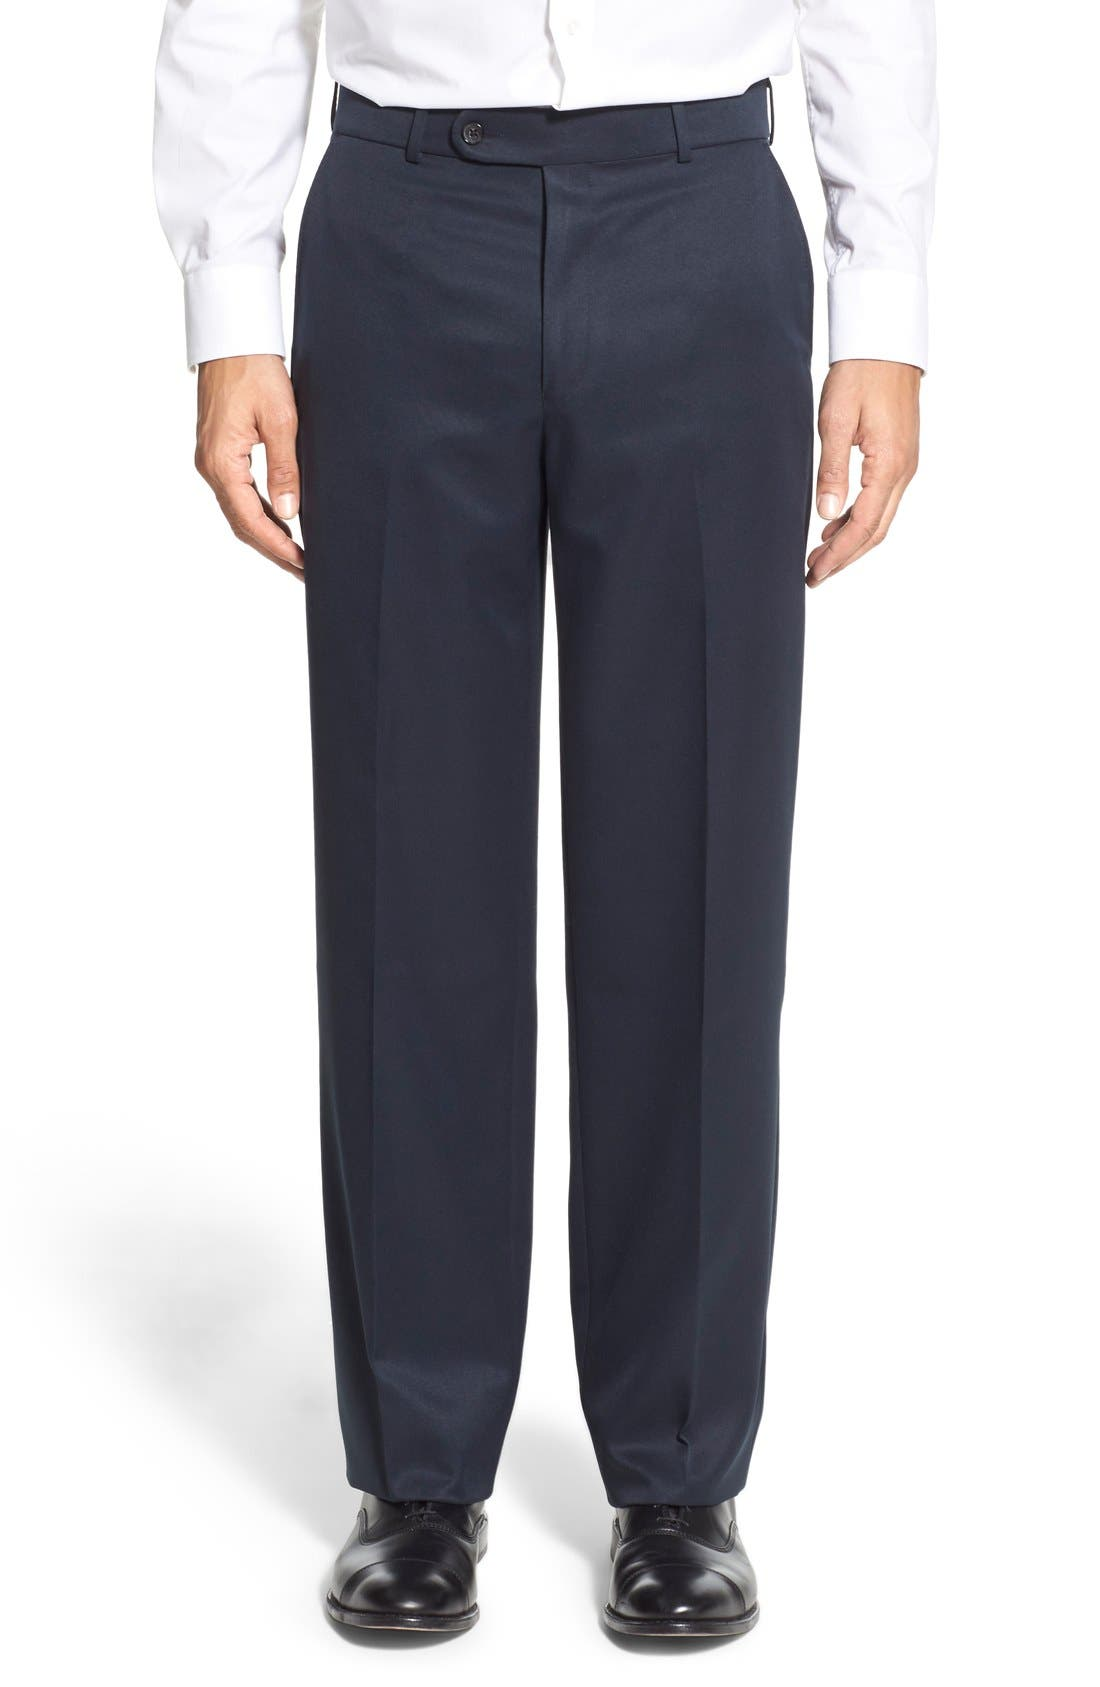 Main Image - Ballin Regular Fit Flat Front Trousers